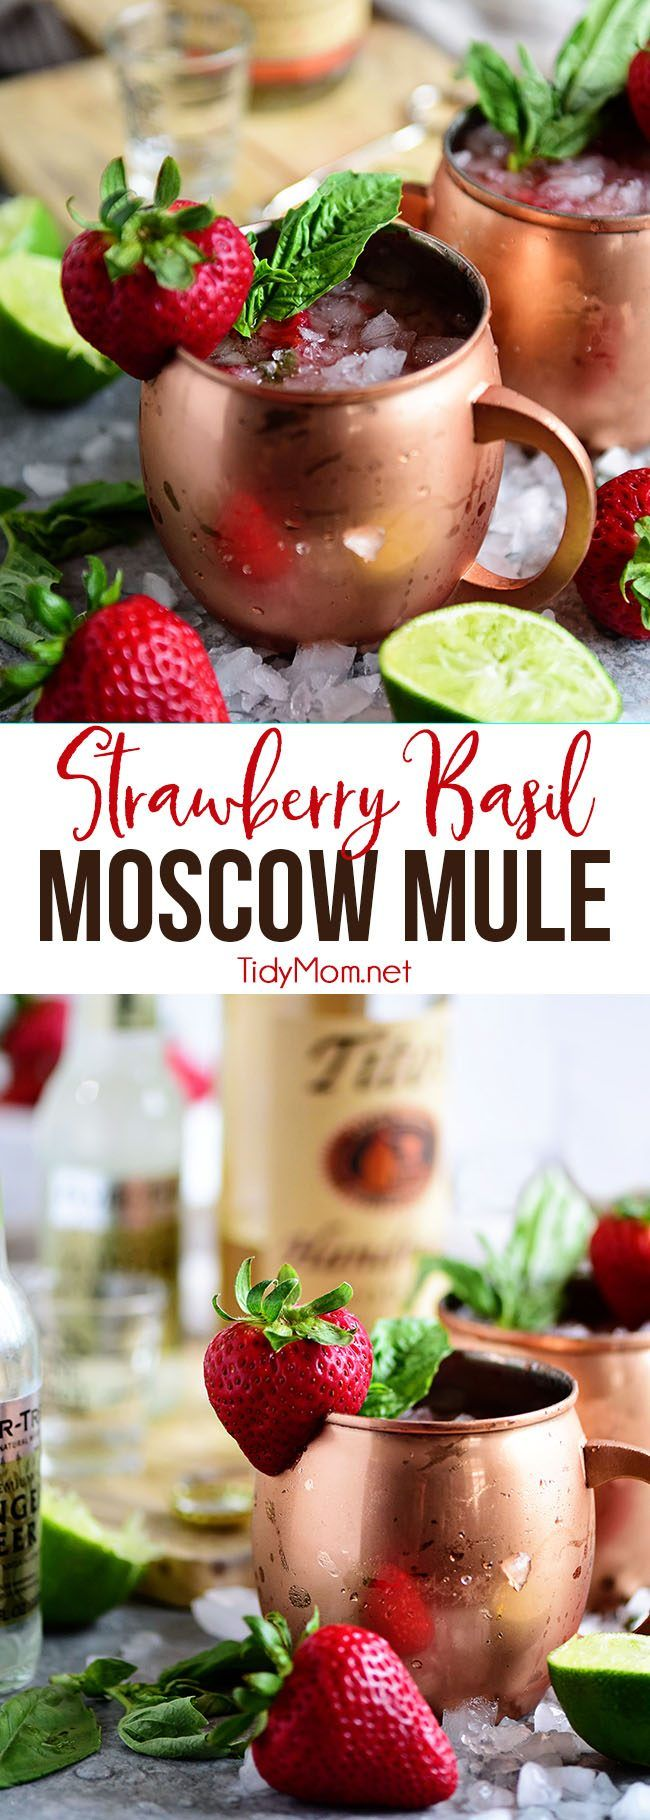 Strawberry Basil Moscow Mule is the perfect summer cocktail. It's a traditional Moscow Mule with vodka, fizzy ginger beer and lime, that gets fresh strawberries and basil muddled into the mixture. Print the full recipe at TidyMom.net